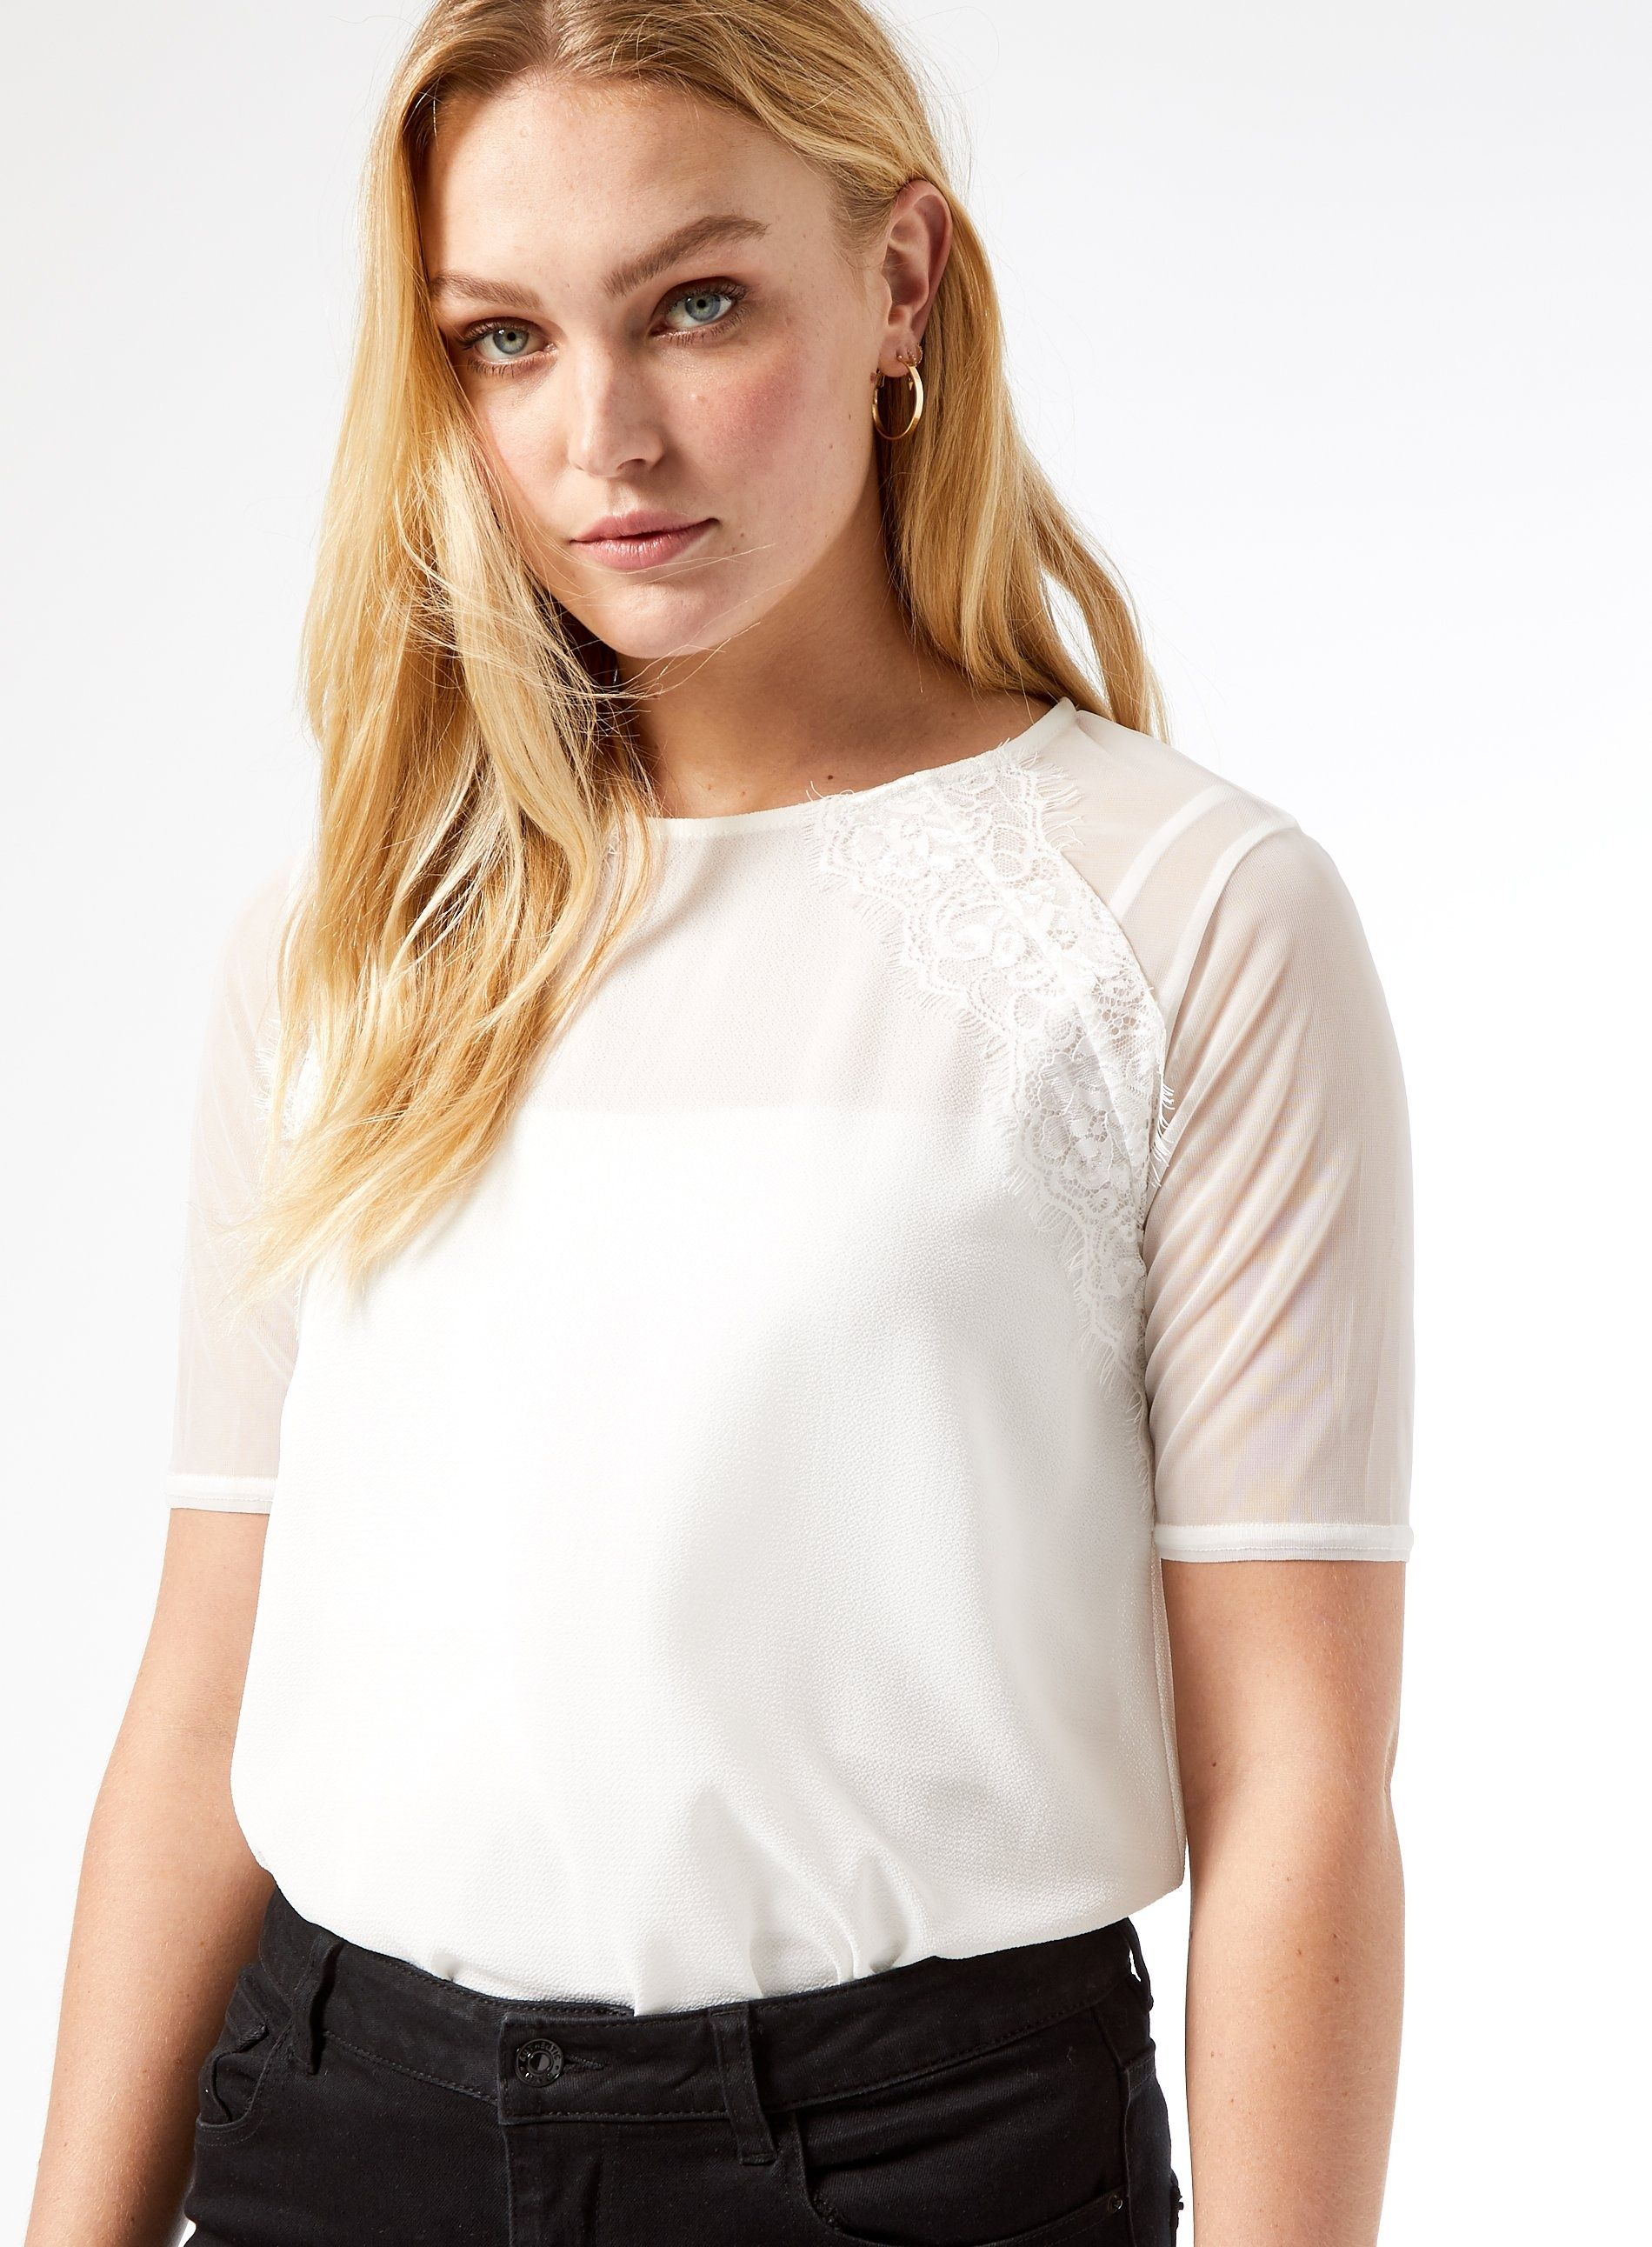 Dorothy Perkins Womens Tall White Lace Insert T-Shirt Short Sleeve Blouse Top